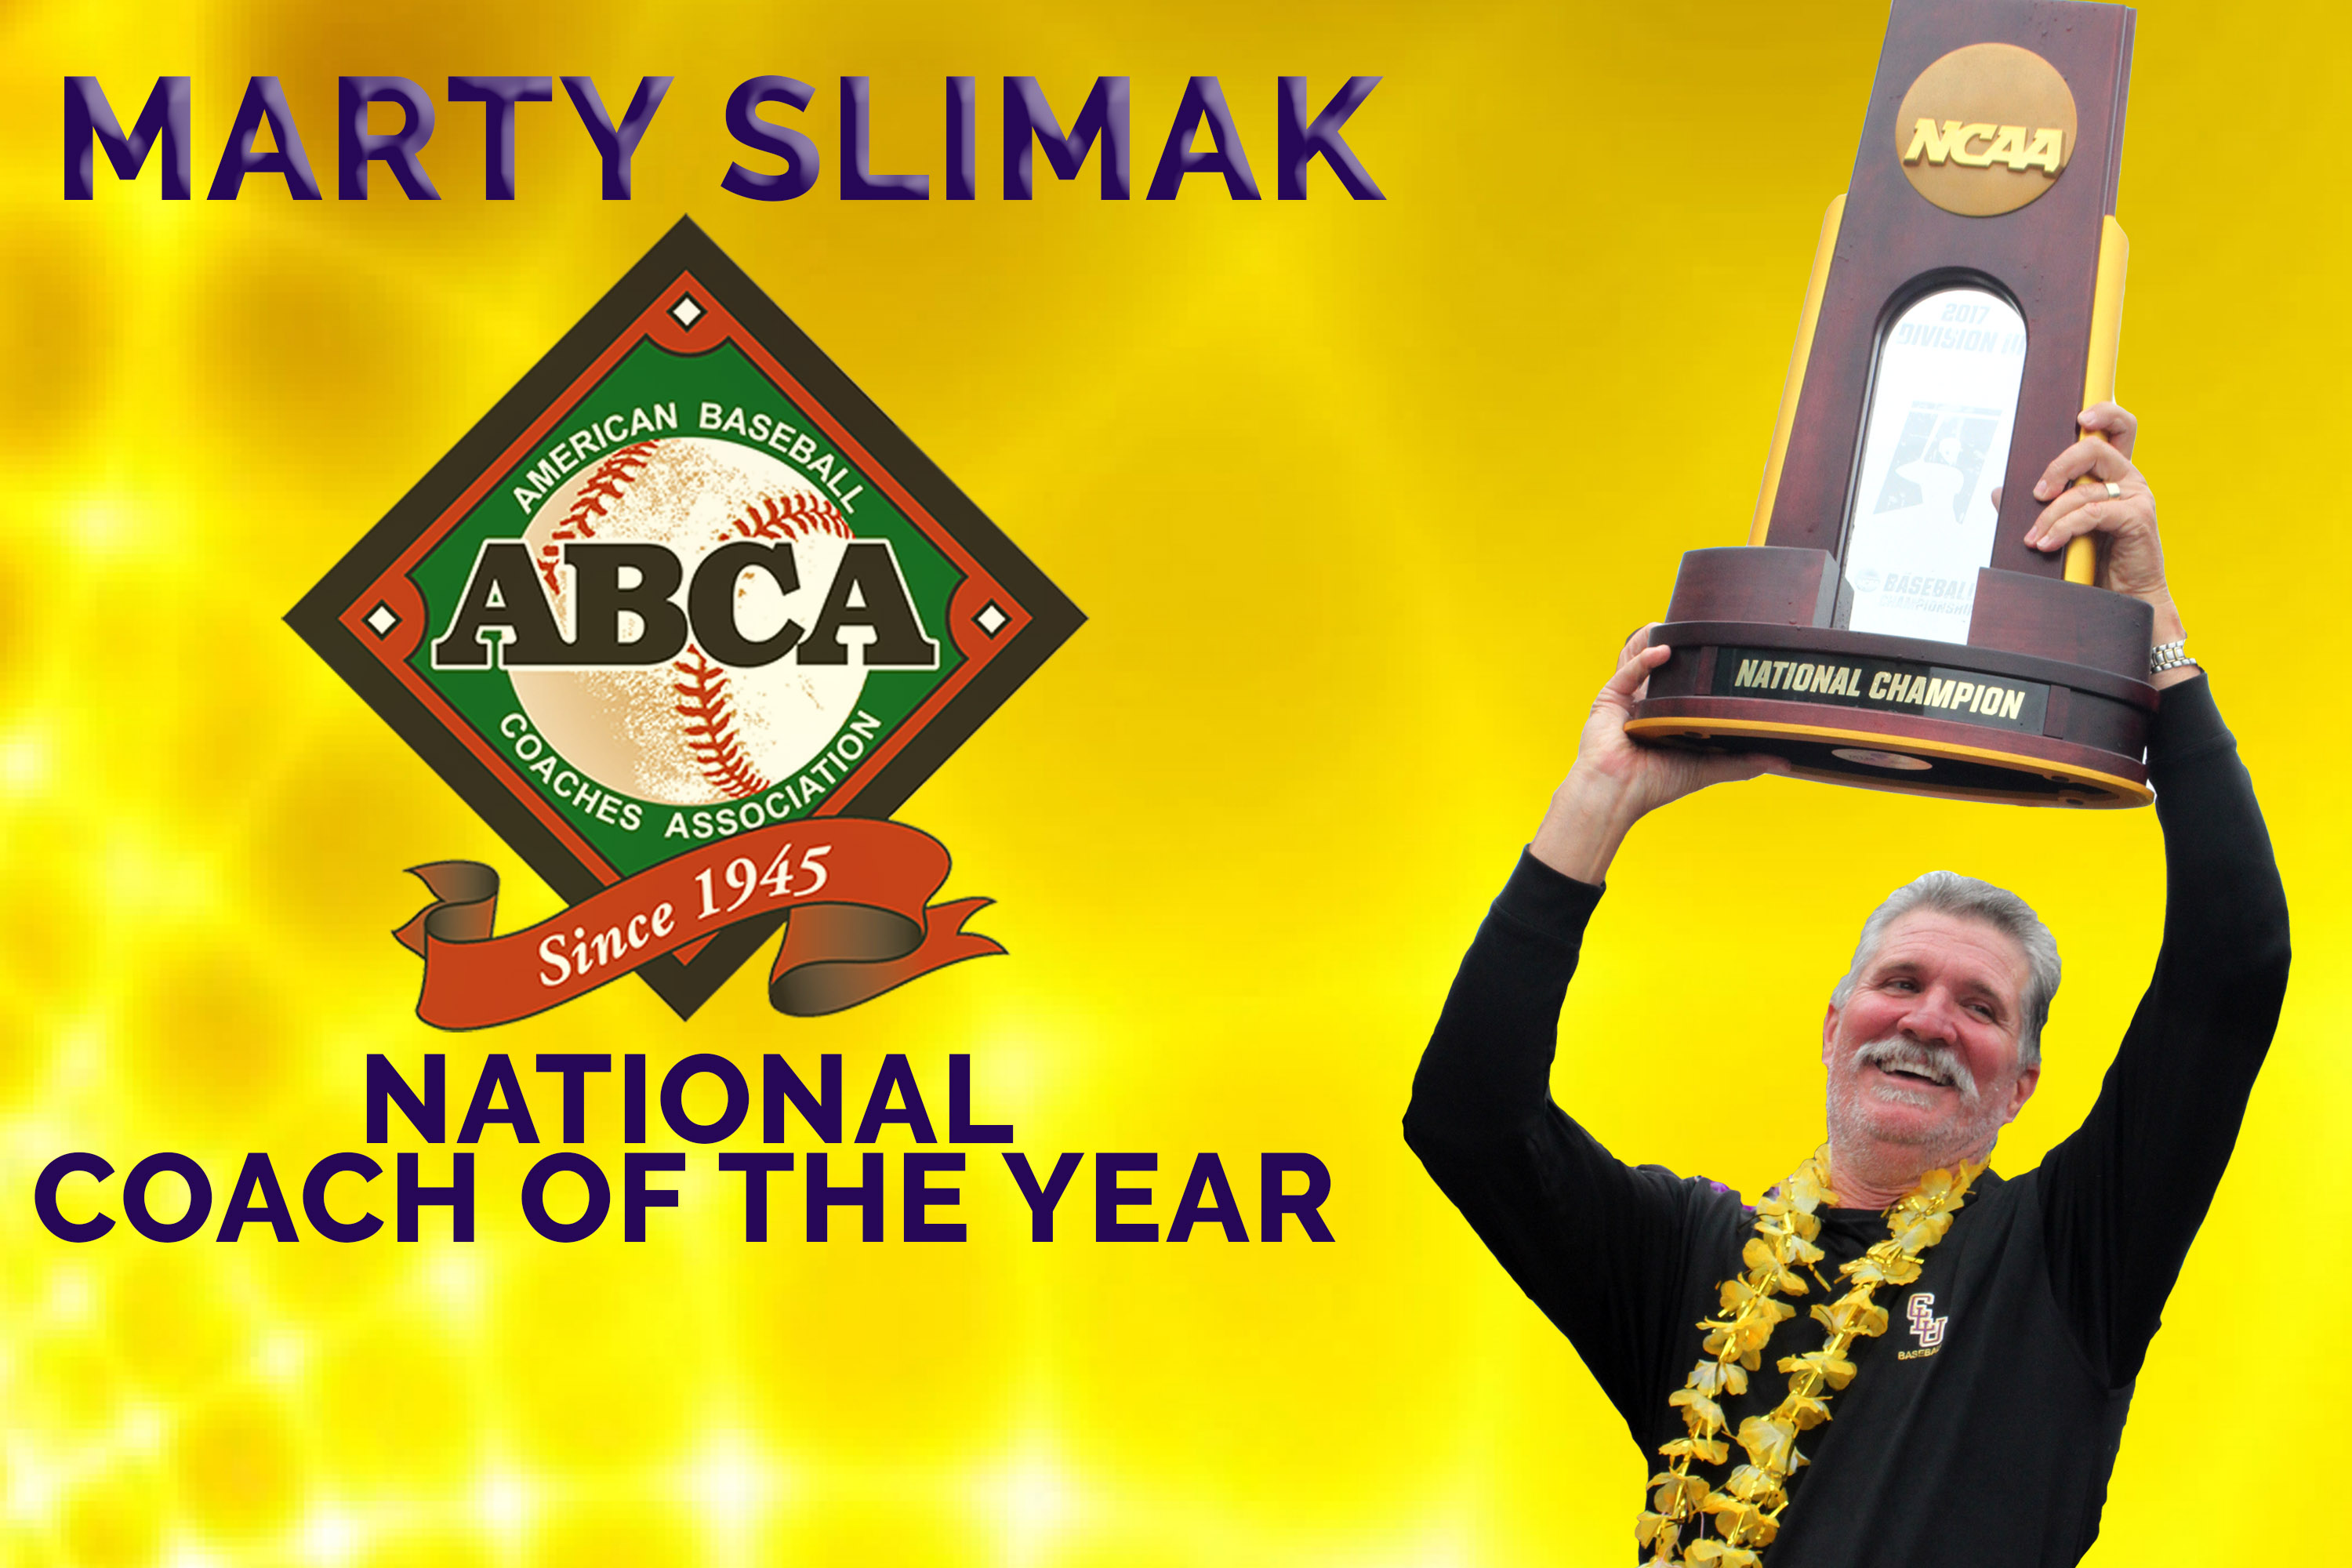 Cal Lutheran's Slimak Selected as National Coach of the Year